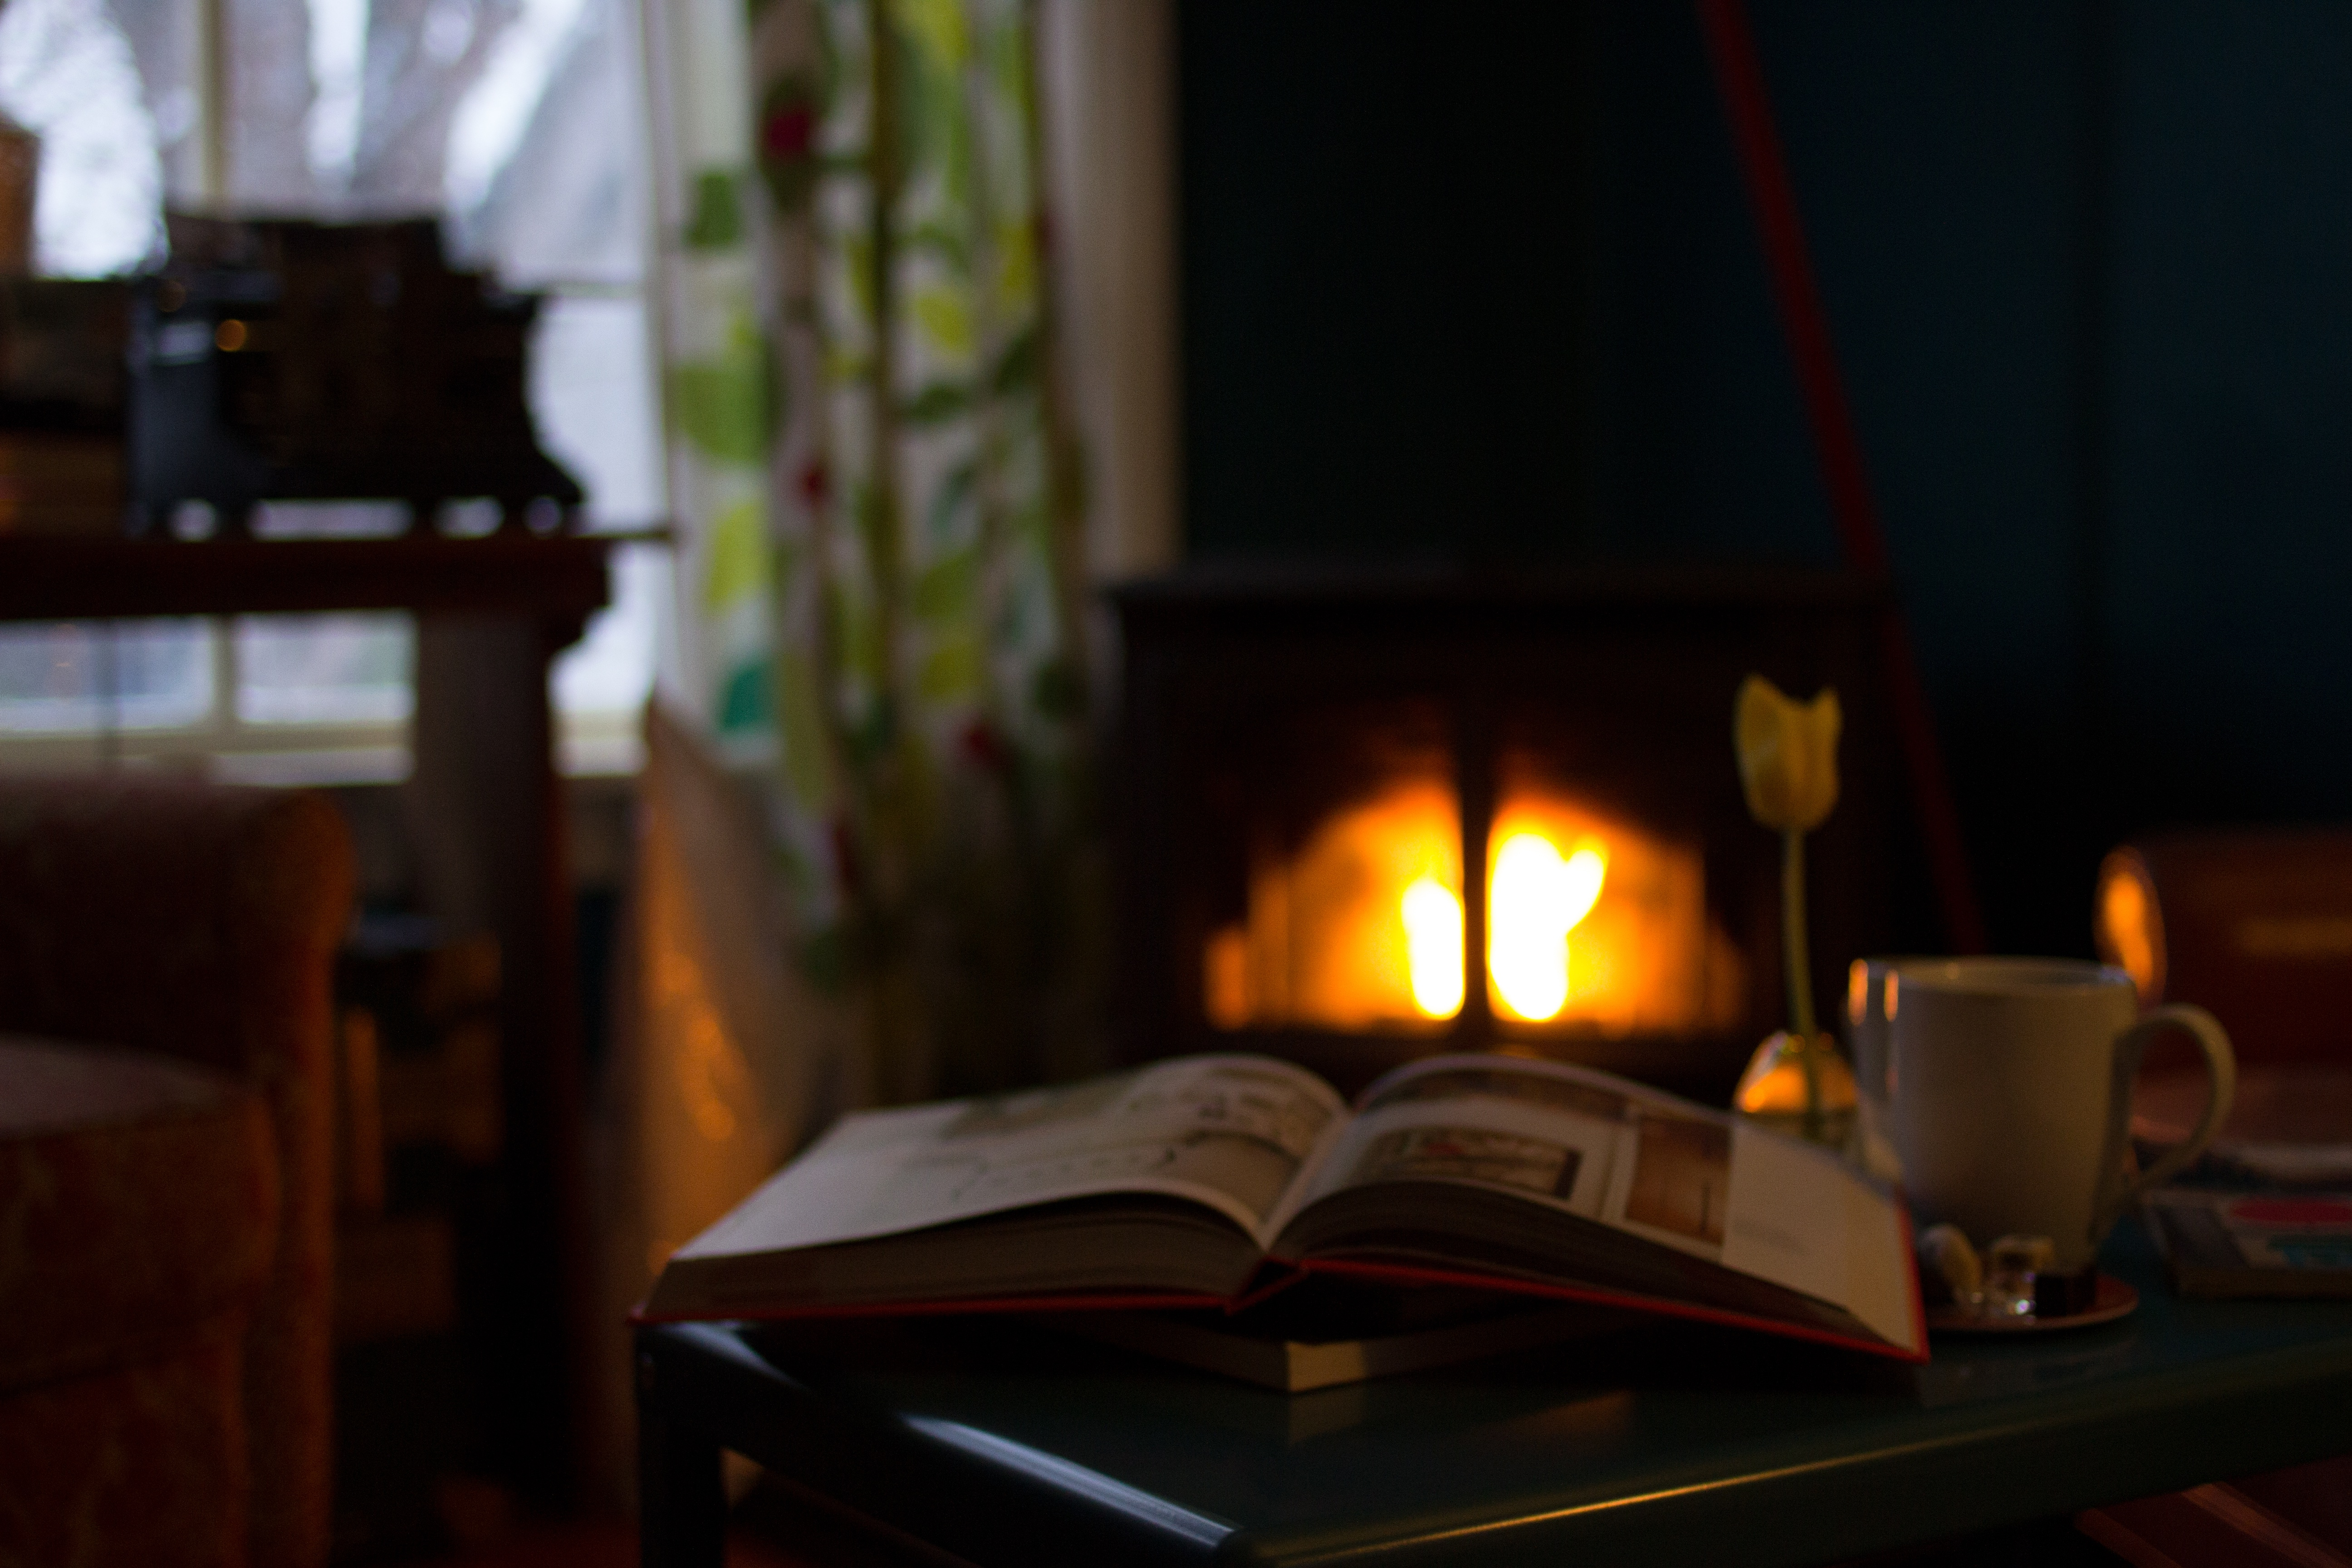 book in front of warm fireplace